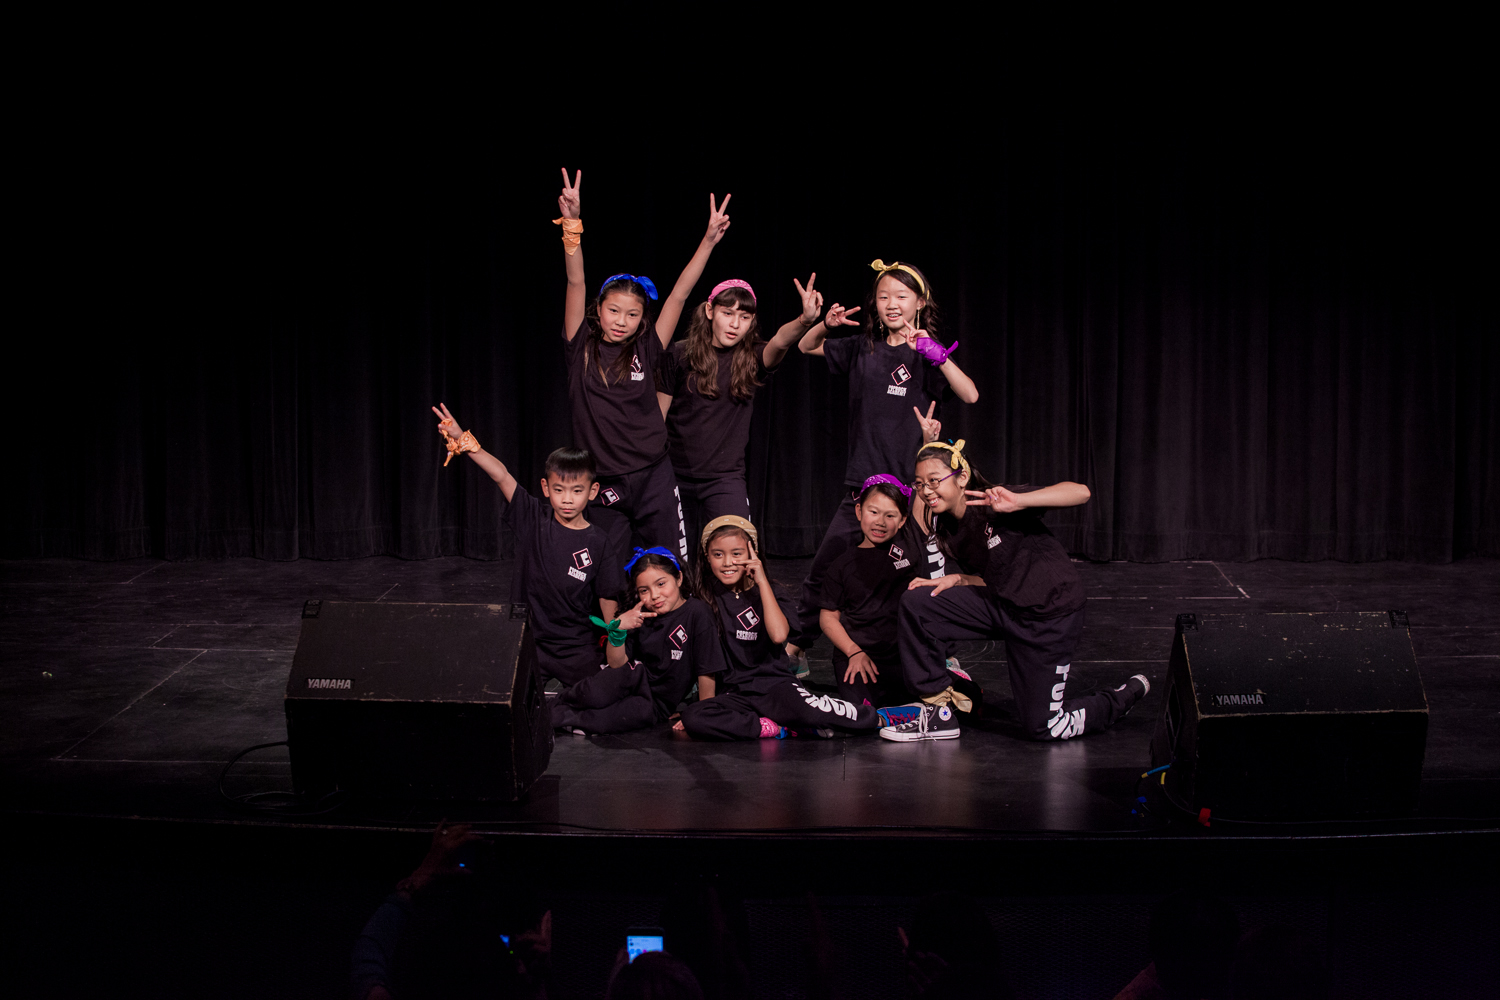 South Pasadena Dance School - Dance classes in hip hop, Jazz, Kpop, Break, Ballet and more